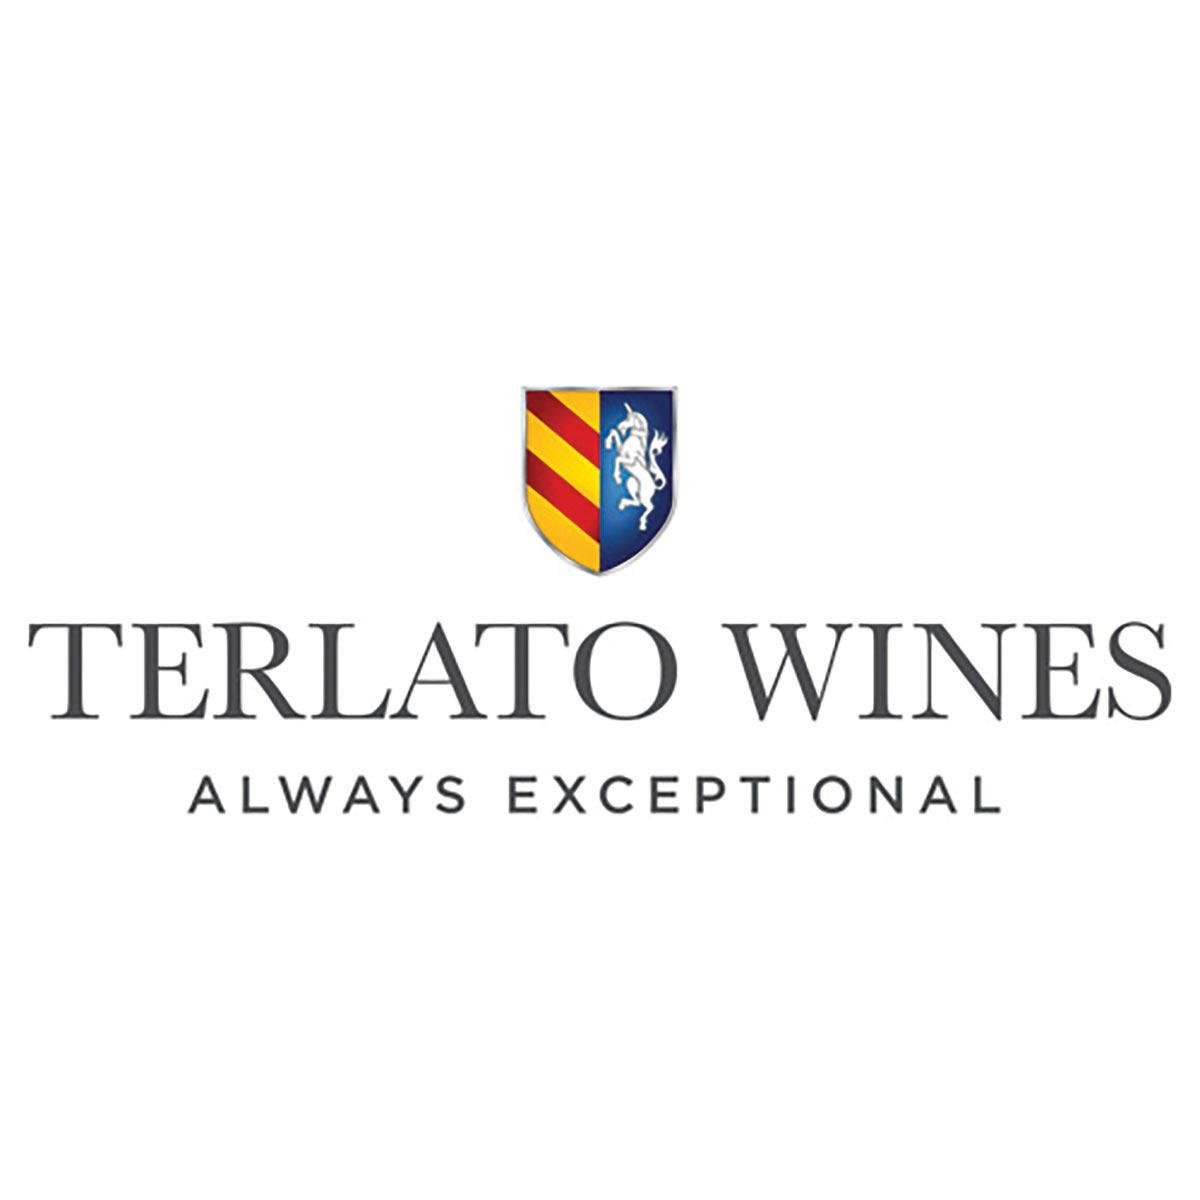 Terlato Wines Hires Cerio for Operations